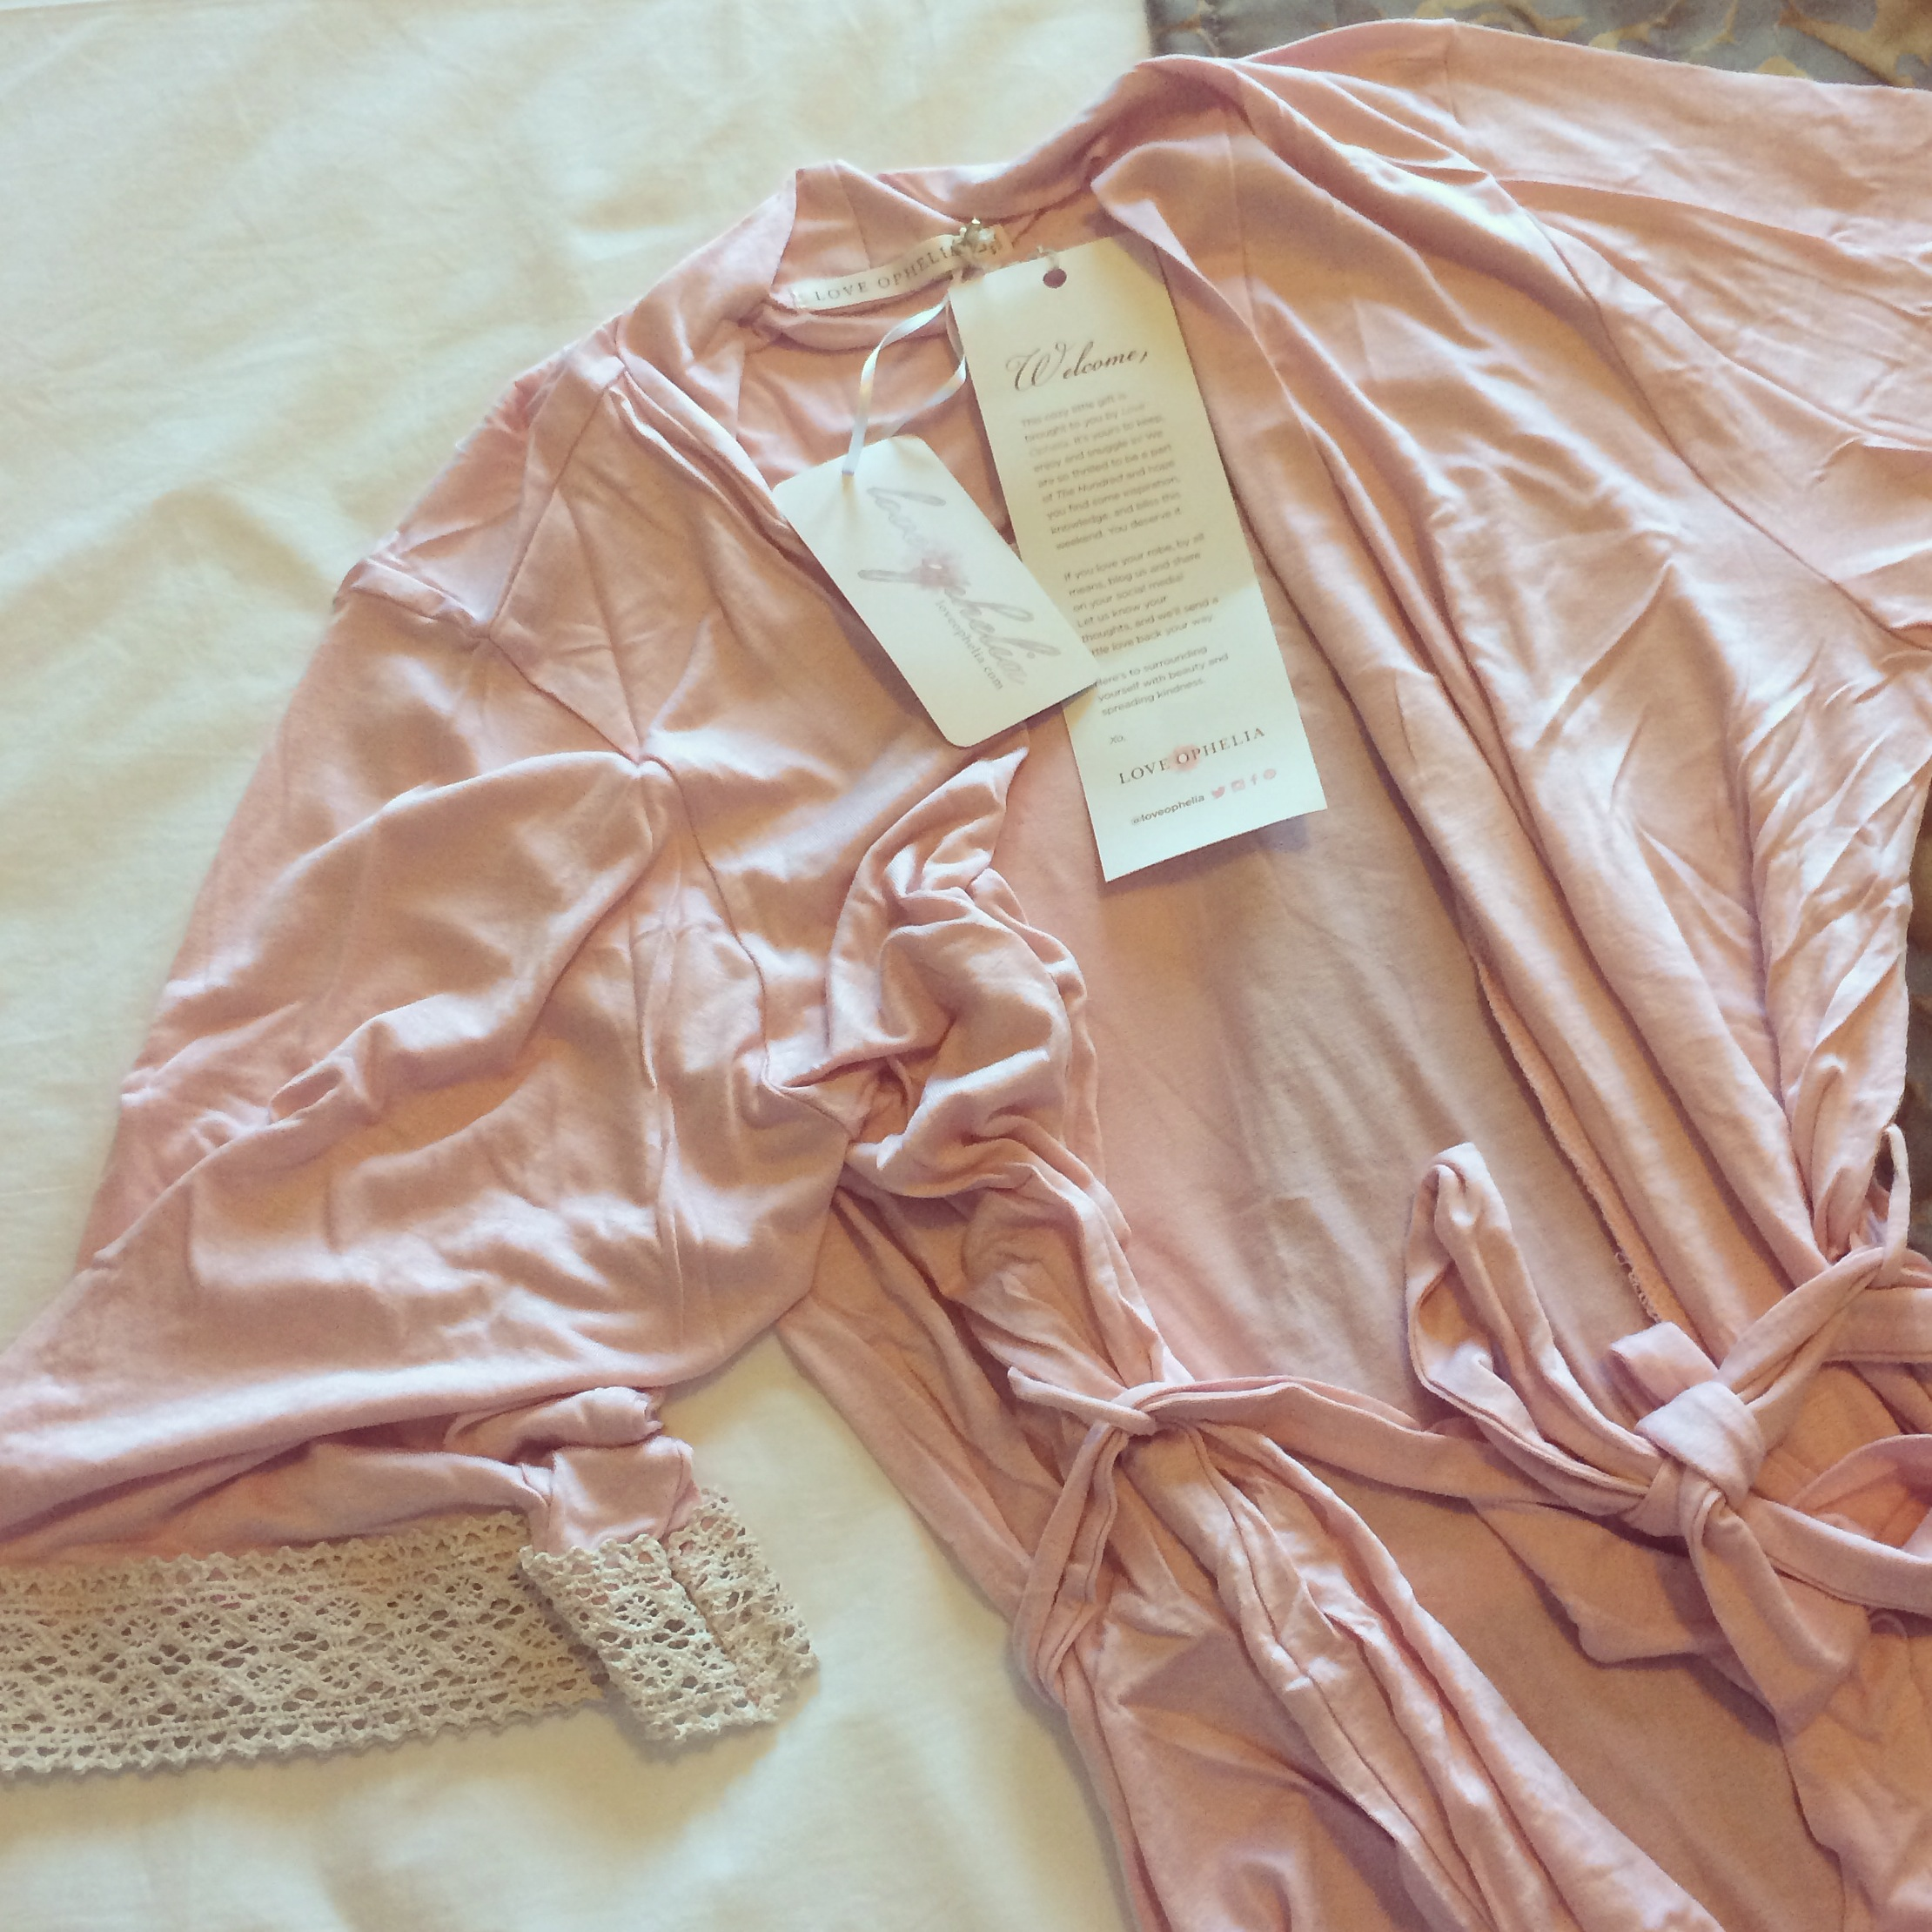 The most softest and pretty robe by  Love Ophelia  I ever did see was waiting for me in my room upon my arrival. Love!!